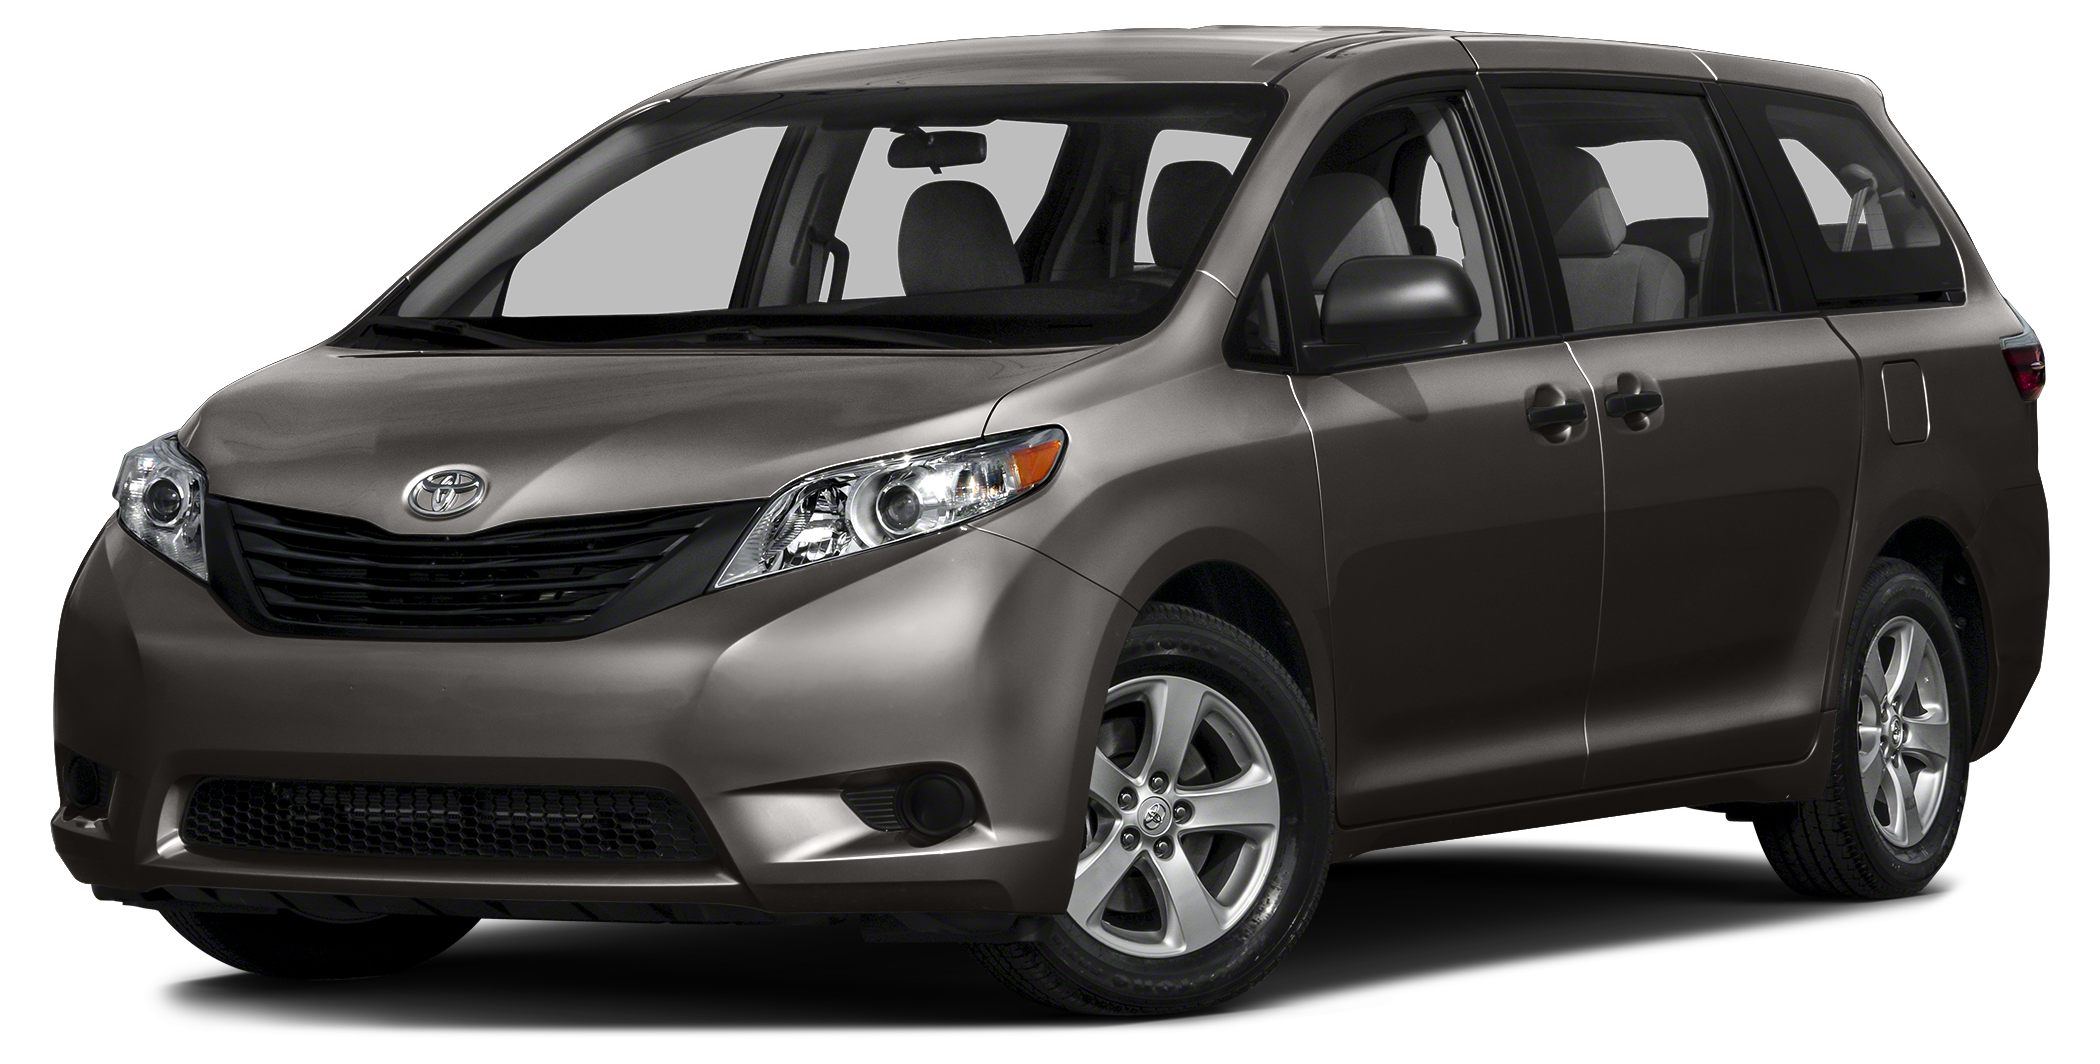 2015 Toyota Sienna Limited Premium 7 Passenger Heated Leather Seats Navigation DVD Entertainment